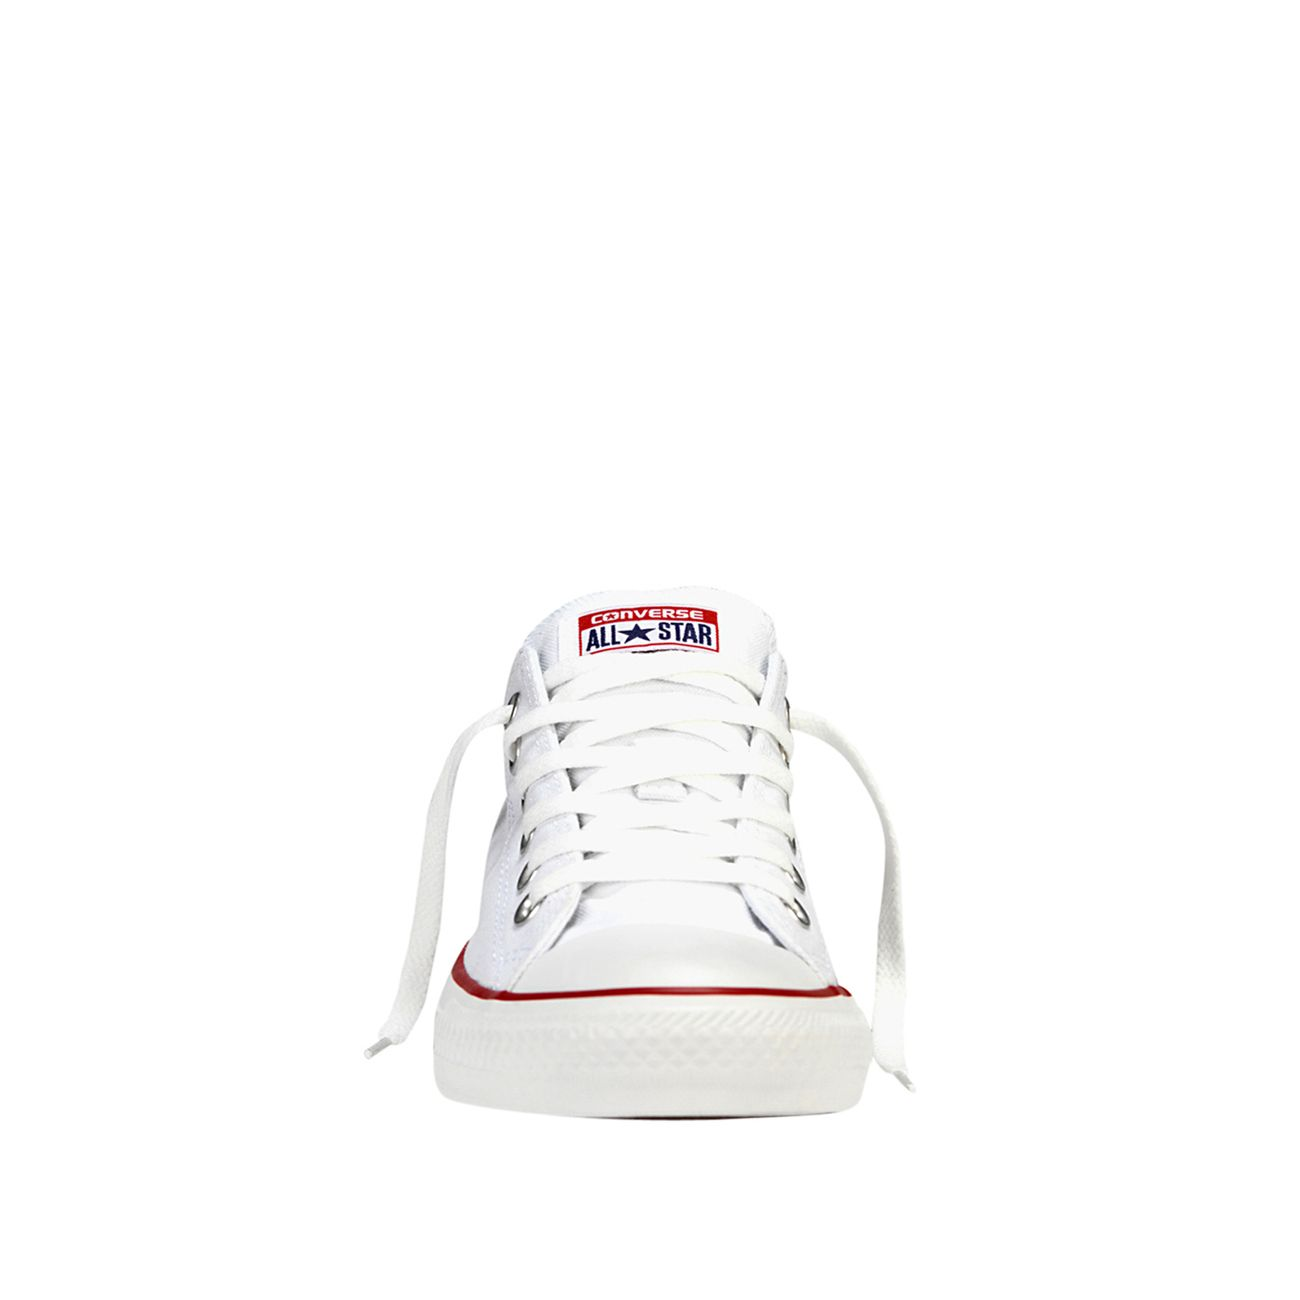 Mode- Lifestyle homme CONVERSE Converse All Star CT Canvas Ox - Ref. M7652